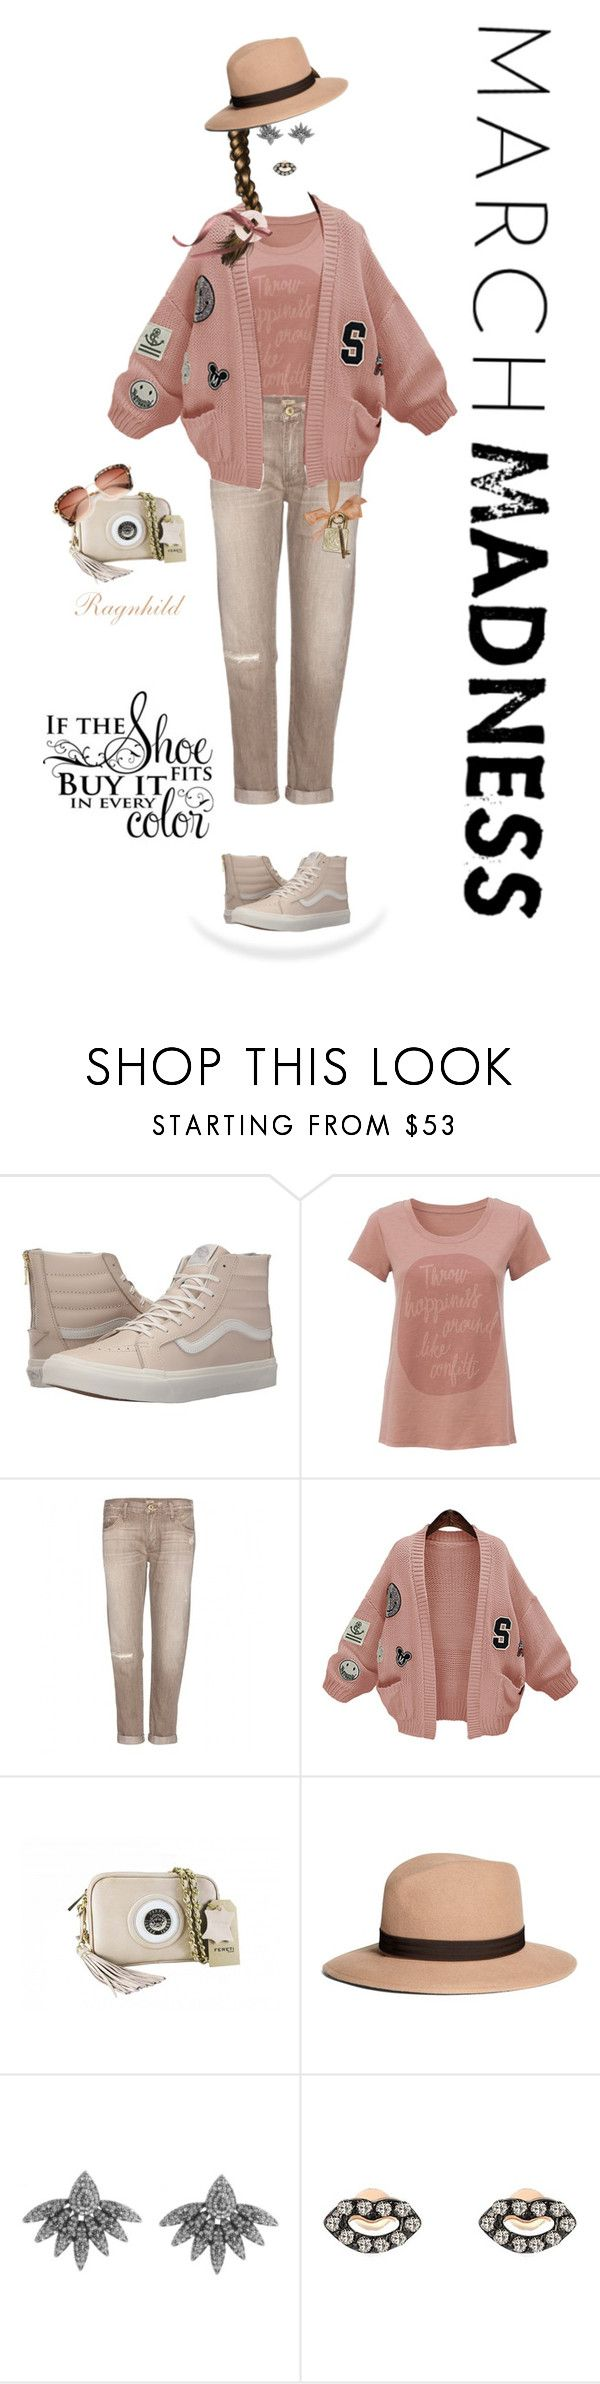 """""""March Madness: High Tops"""" by ragnh-mjos ❤ liked on Polyvore featuring Vans, True Religion, WithChic, Brooks Brothers, House of Harlow 1960, Kismet by Milka, contest, outfit and hightops"""